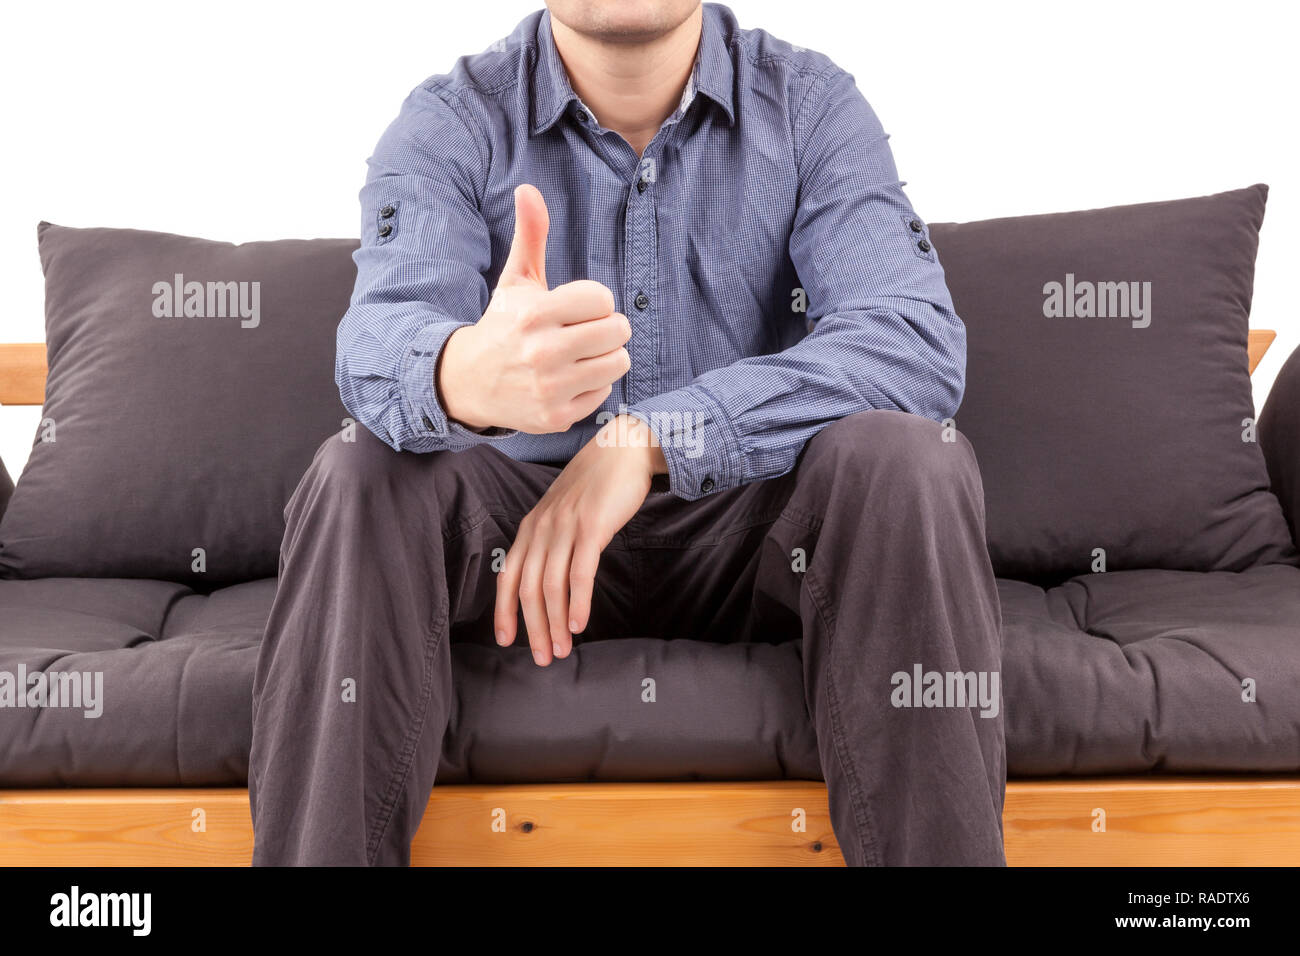 Businessman on sofa showing thumbs up. Mentor and leadership concept. - Stock Image